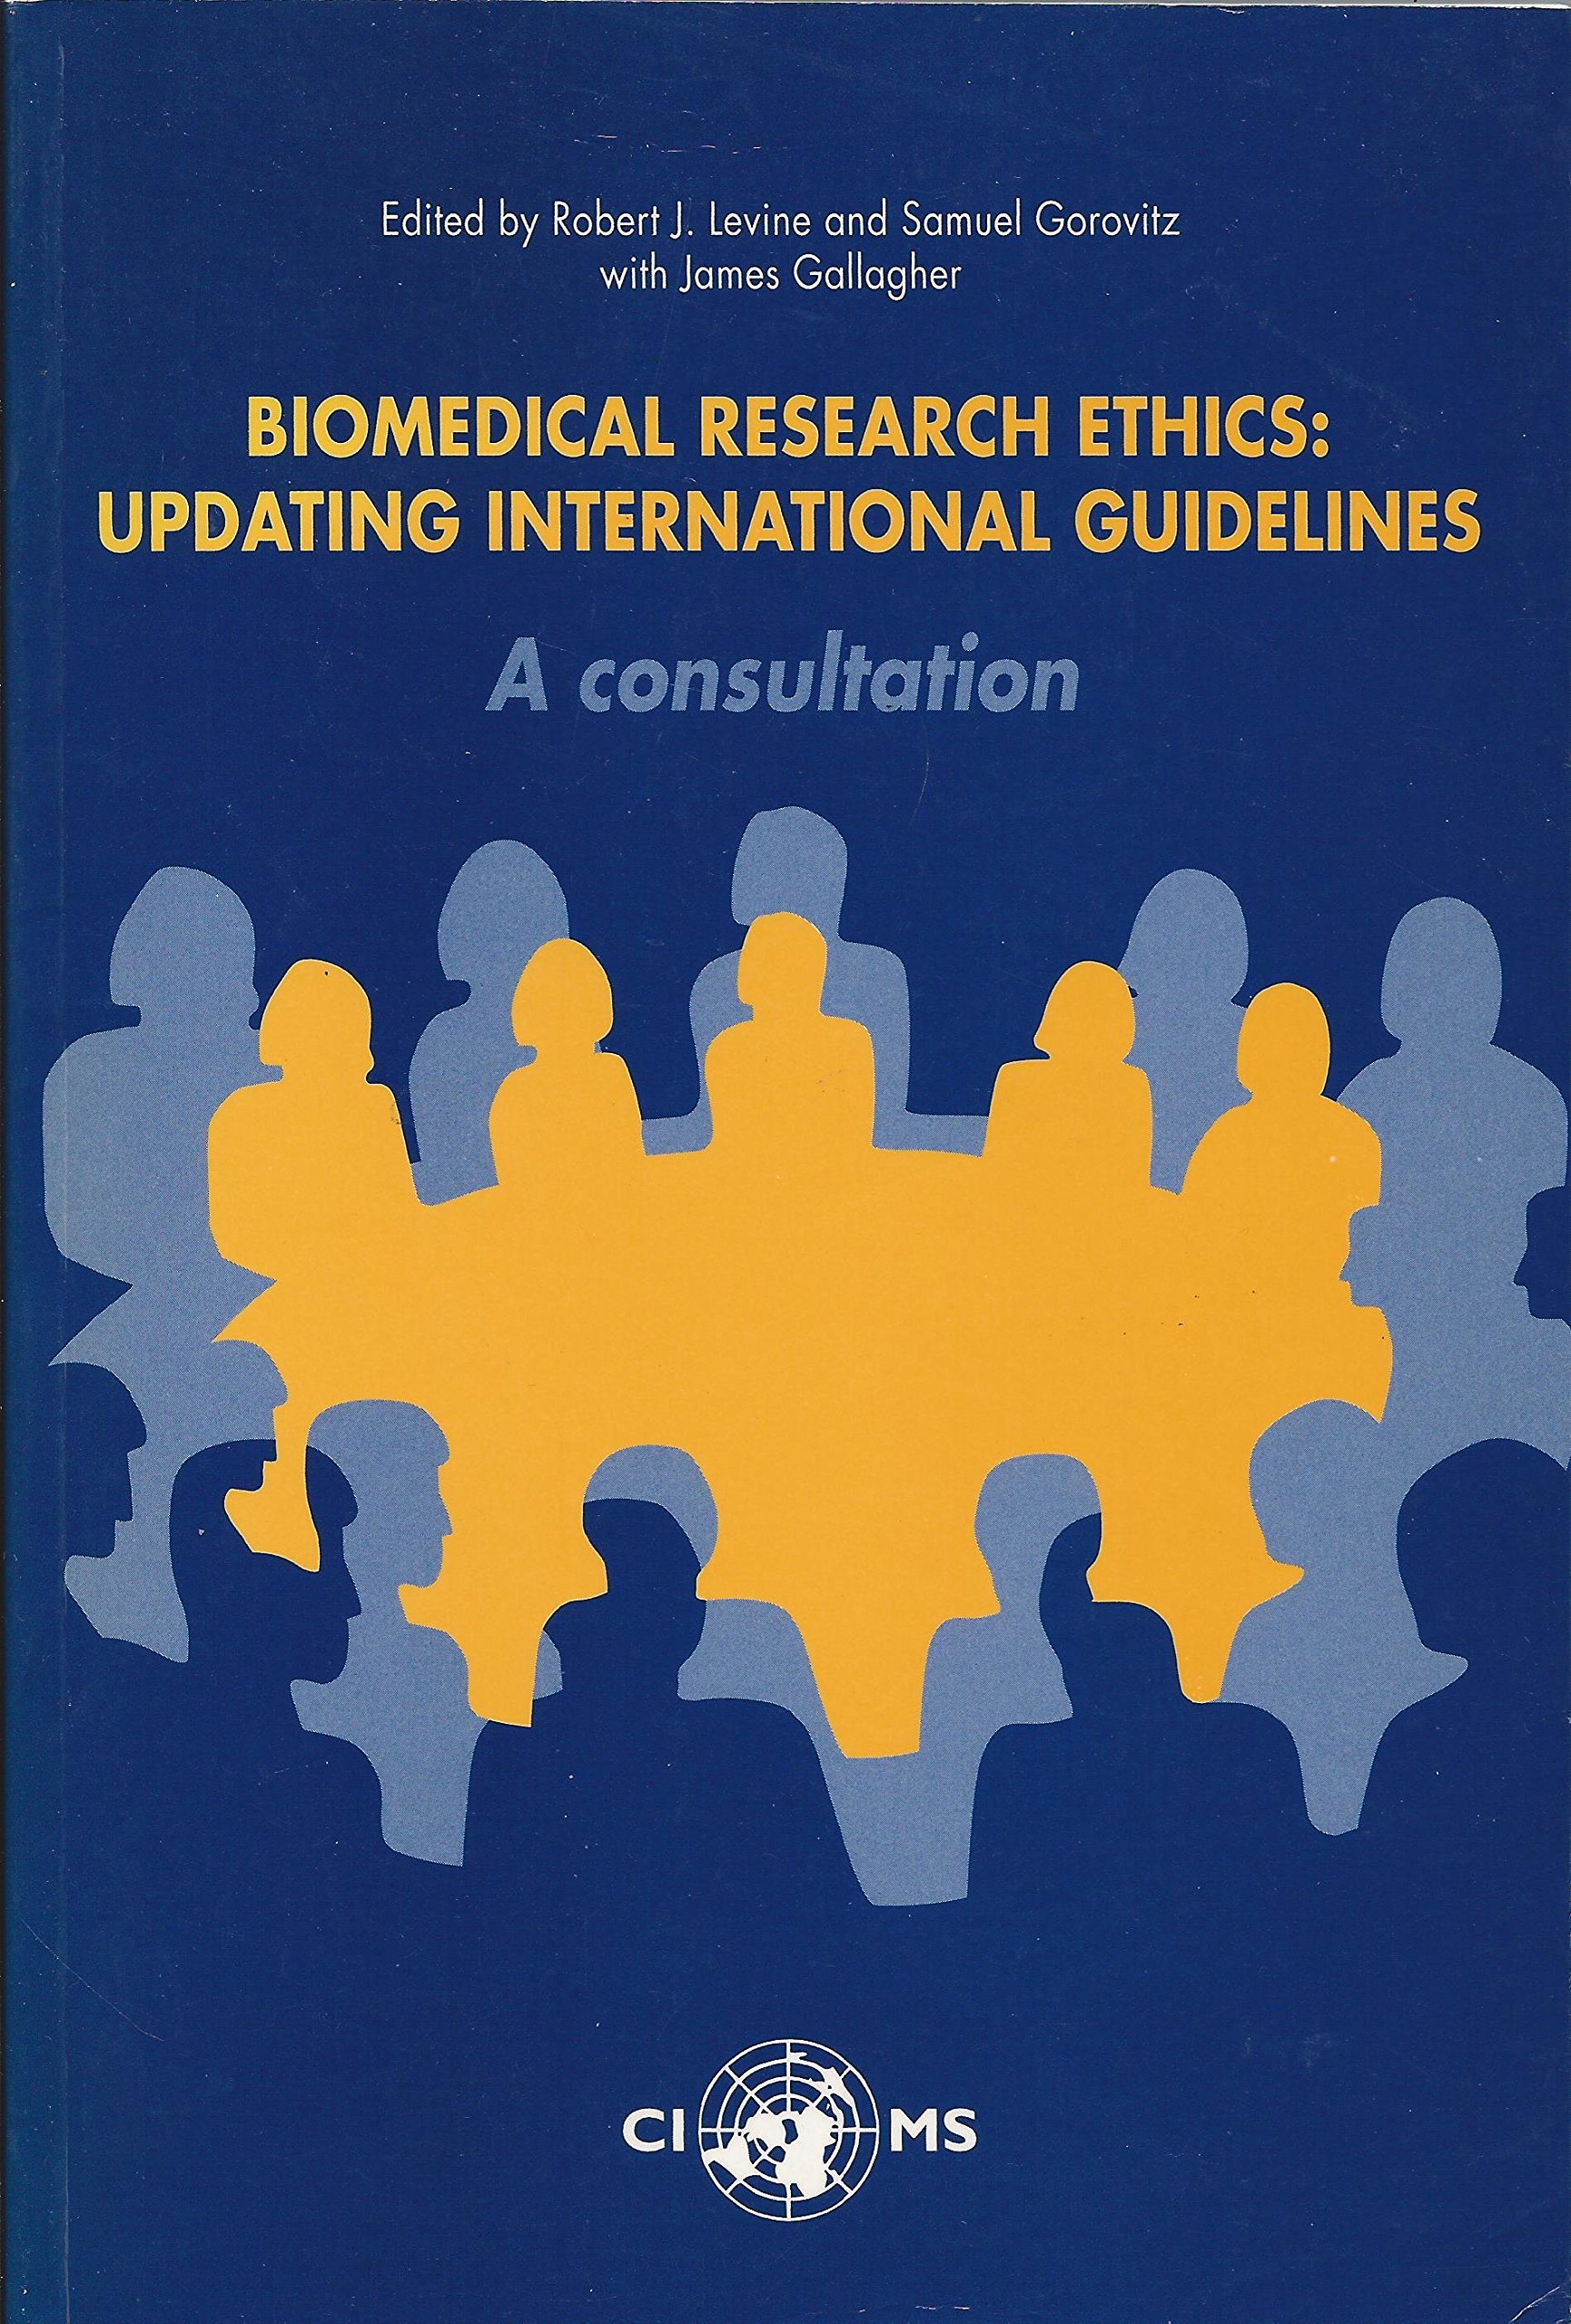 Biomedical Research Ethics: Updating International Guidelines